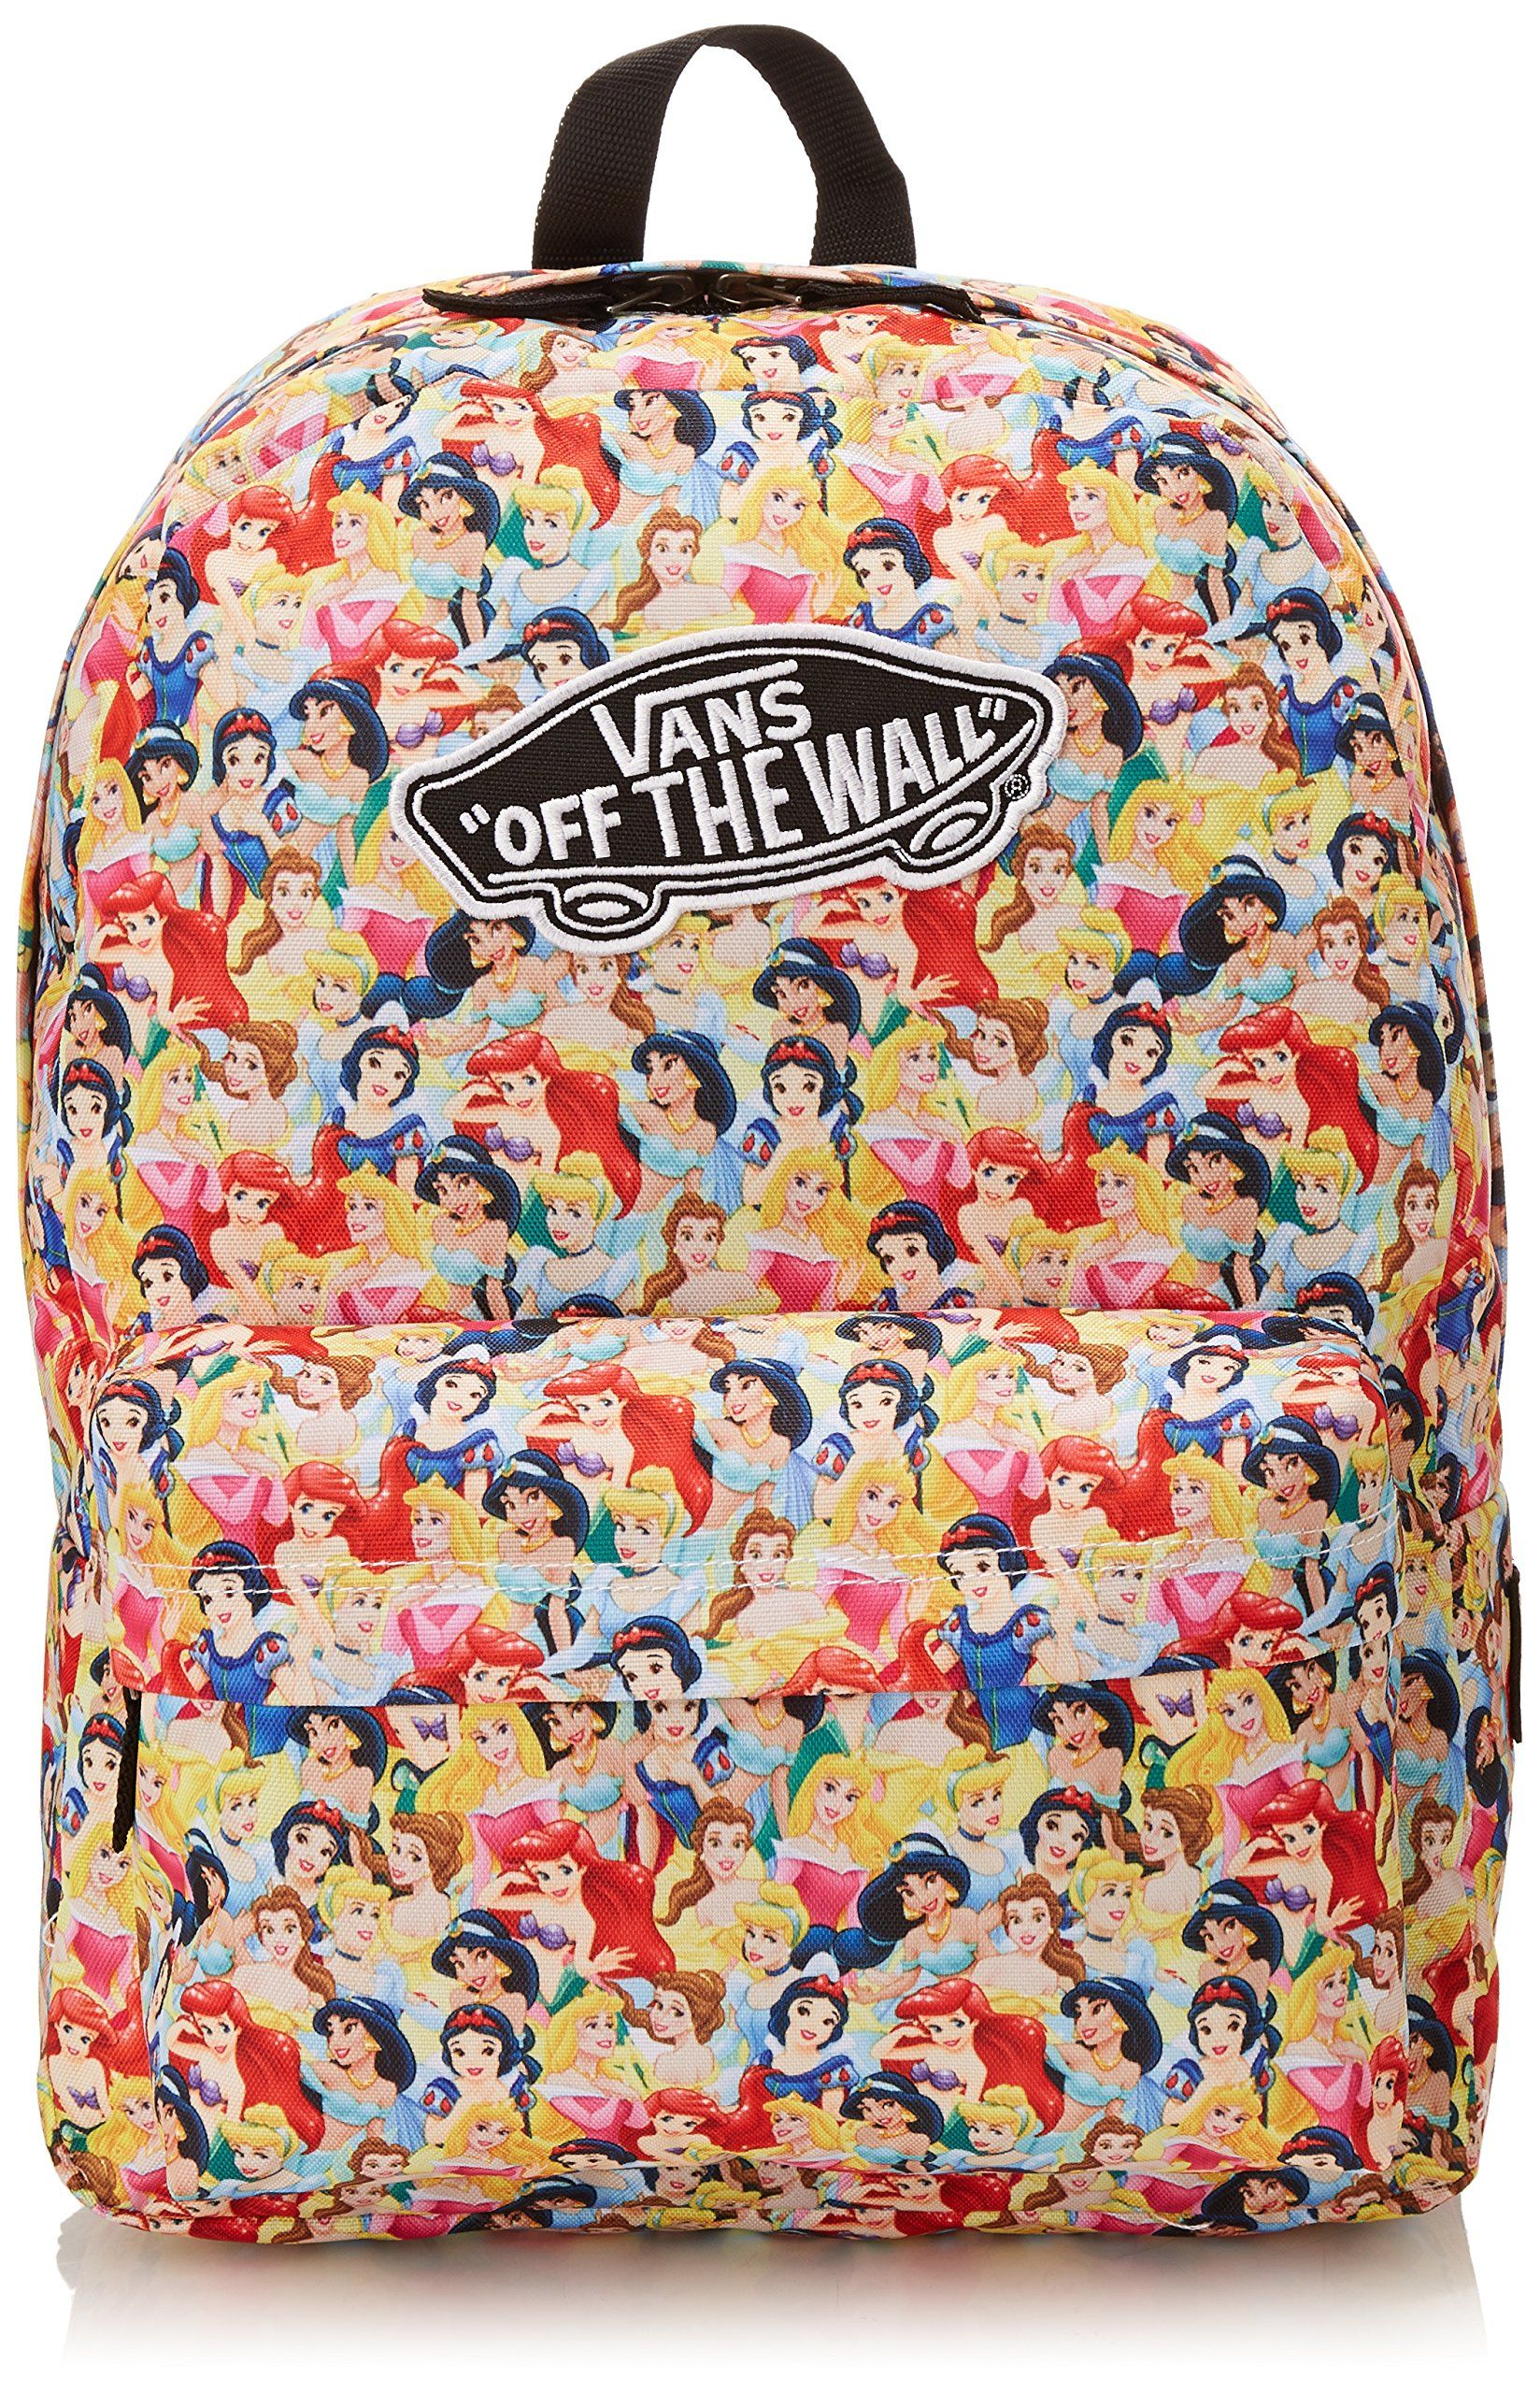 Vans Womens Disney Backpack Minnie Mouse: Amazon.co.uk: Shoes & Bags ...